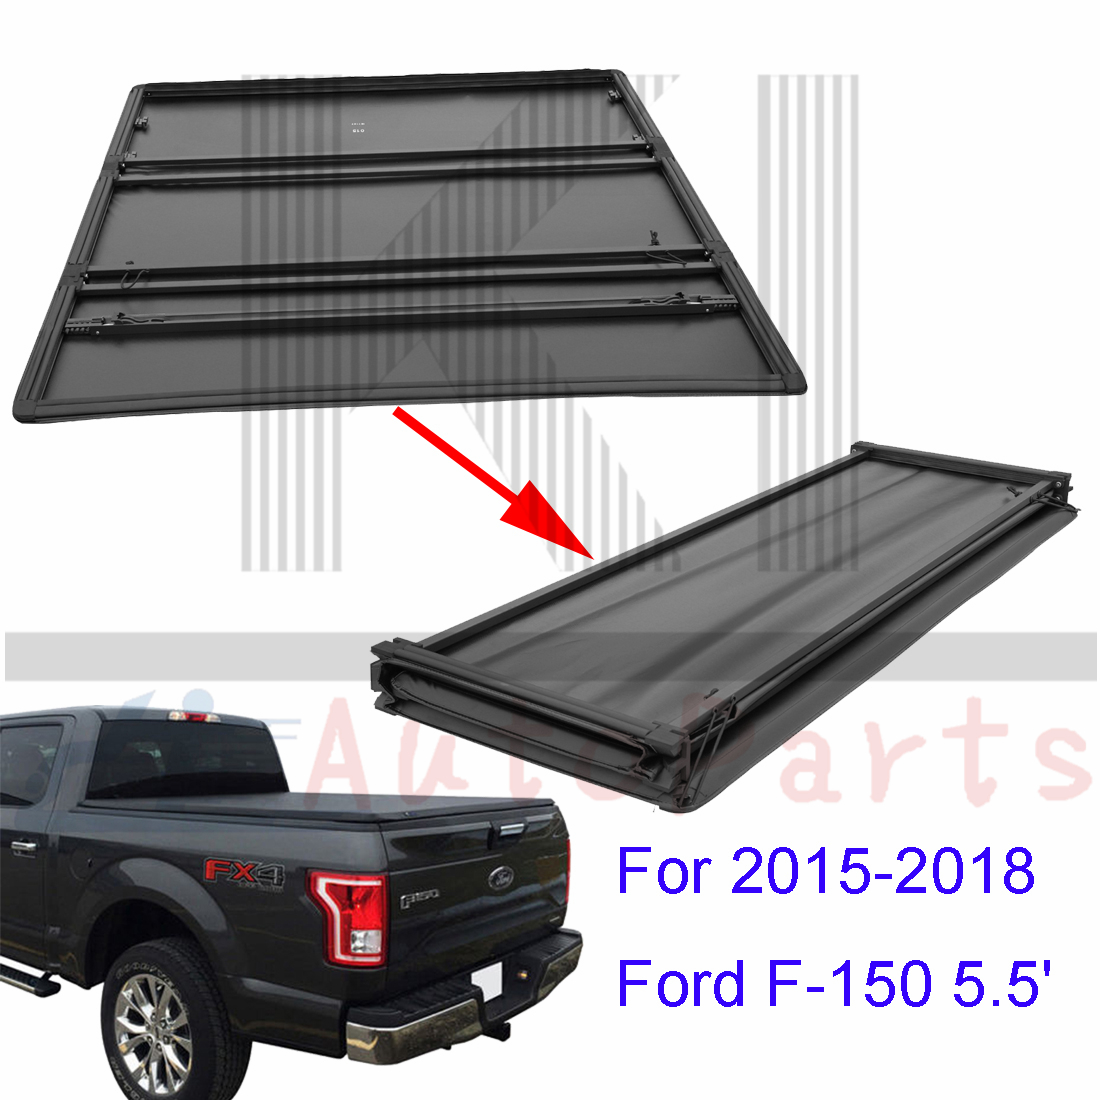 Soft Tri Fold Tonneau Cover For 2015 2018 Ford F 150 5 5ft Truck Bed Auto Parts And Vehicles Truck Bed Accessories Magenta Cl